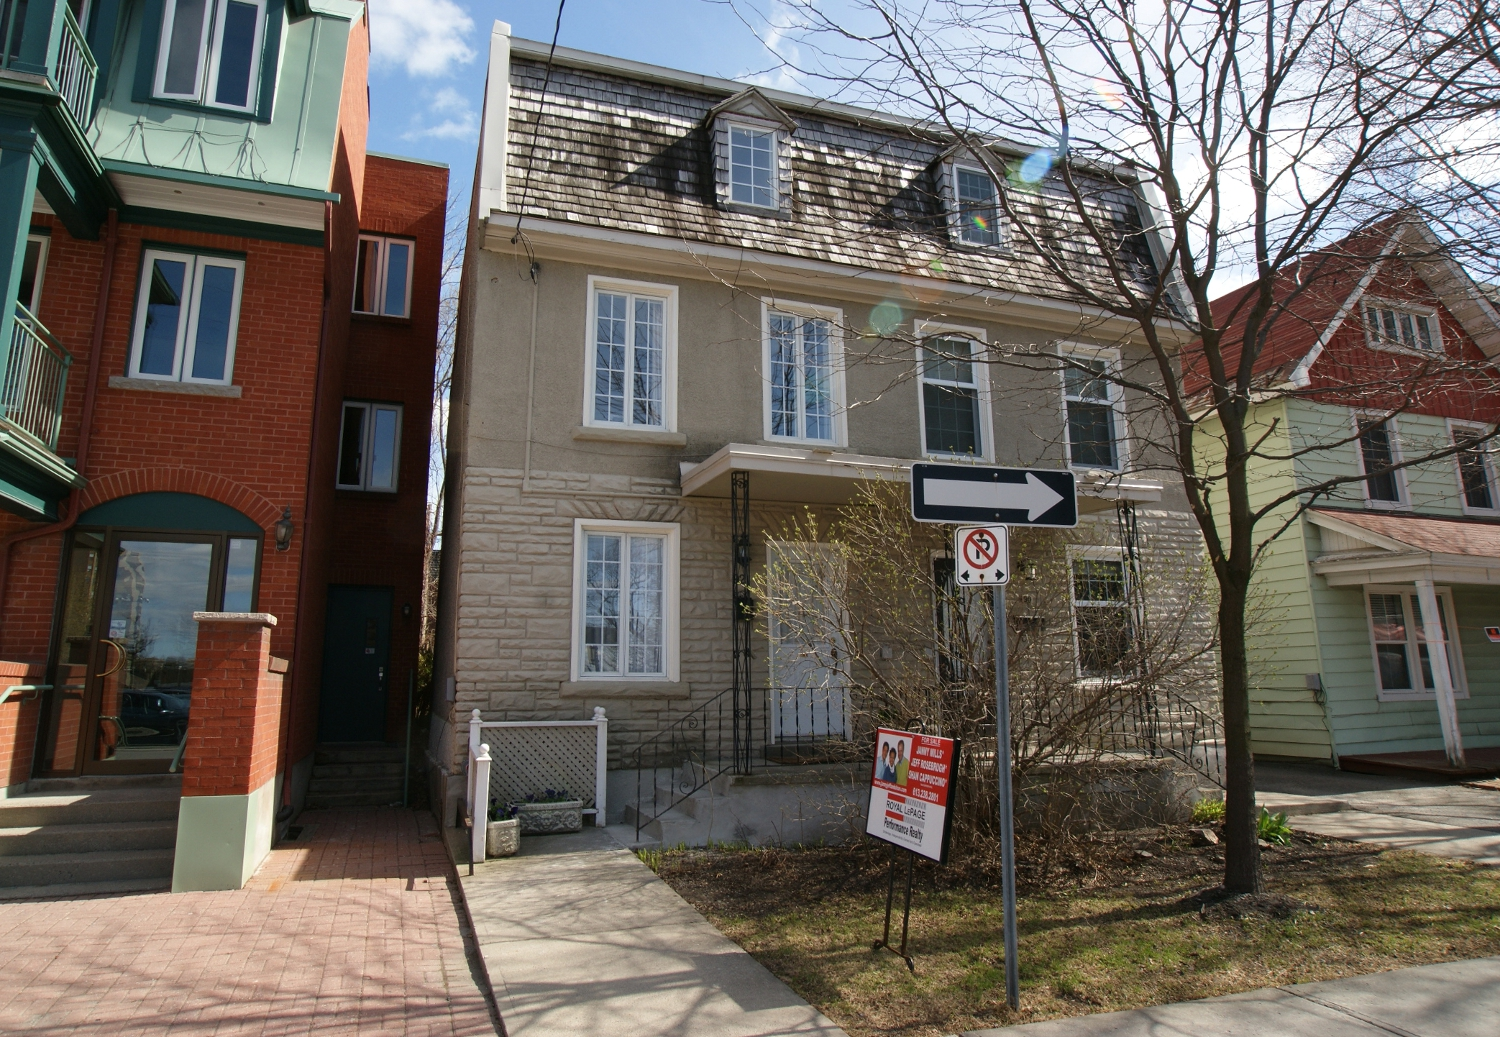 92 Bruyère Street – Sold May 2014